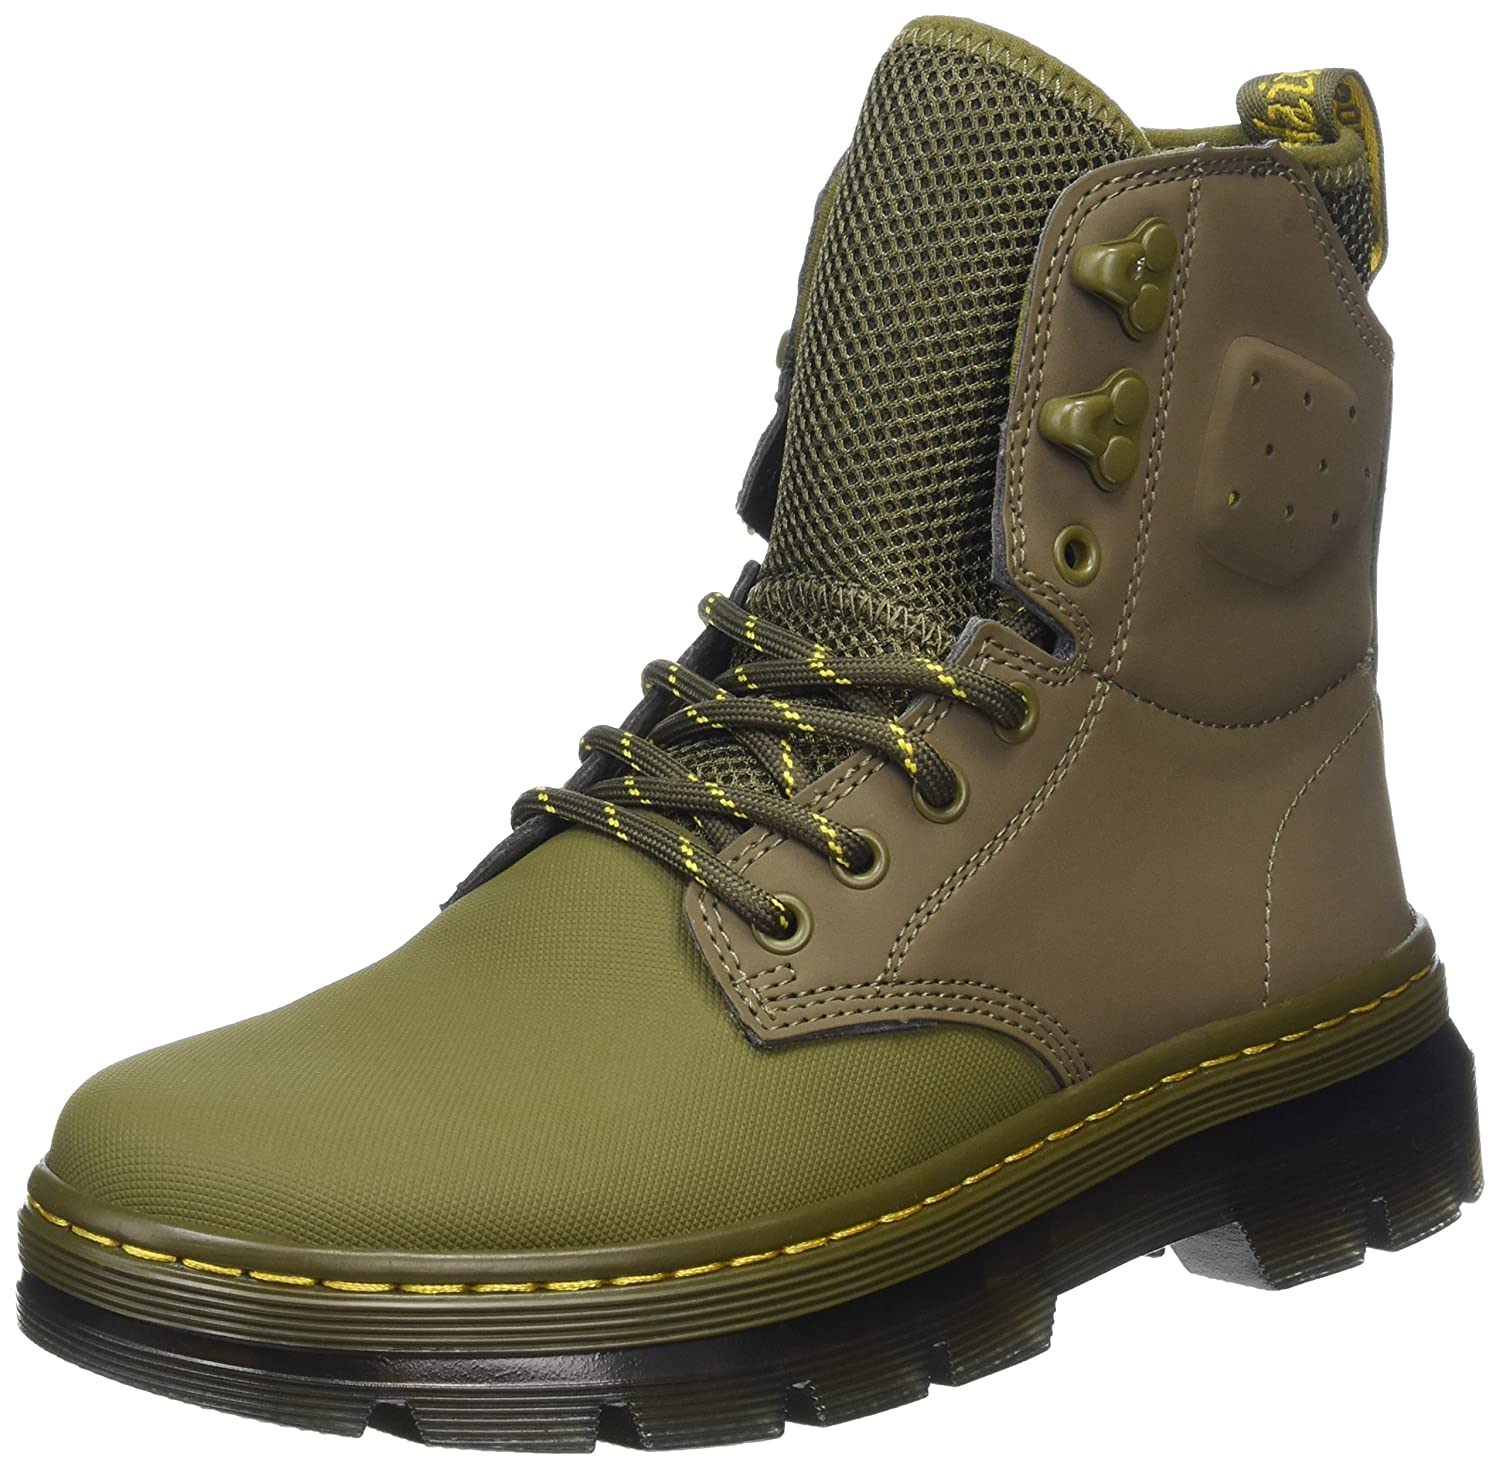 Newest Unisex Adults Quinton Black Ajax+Synthetic Nubuck Boots Dr. Martens Outlet Store Locations Cheap Sale Largest Supplier Amazing bDpzO